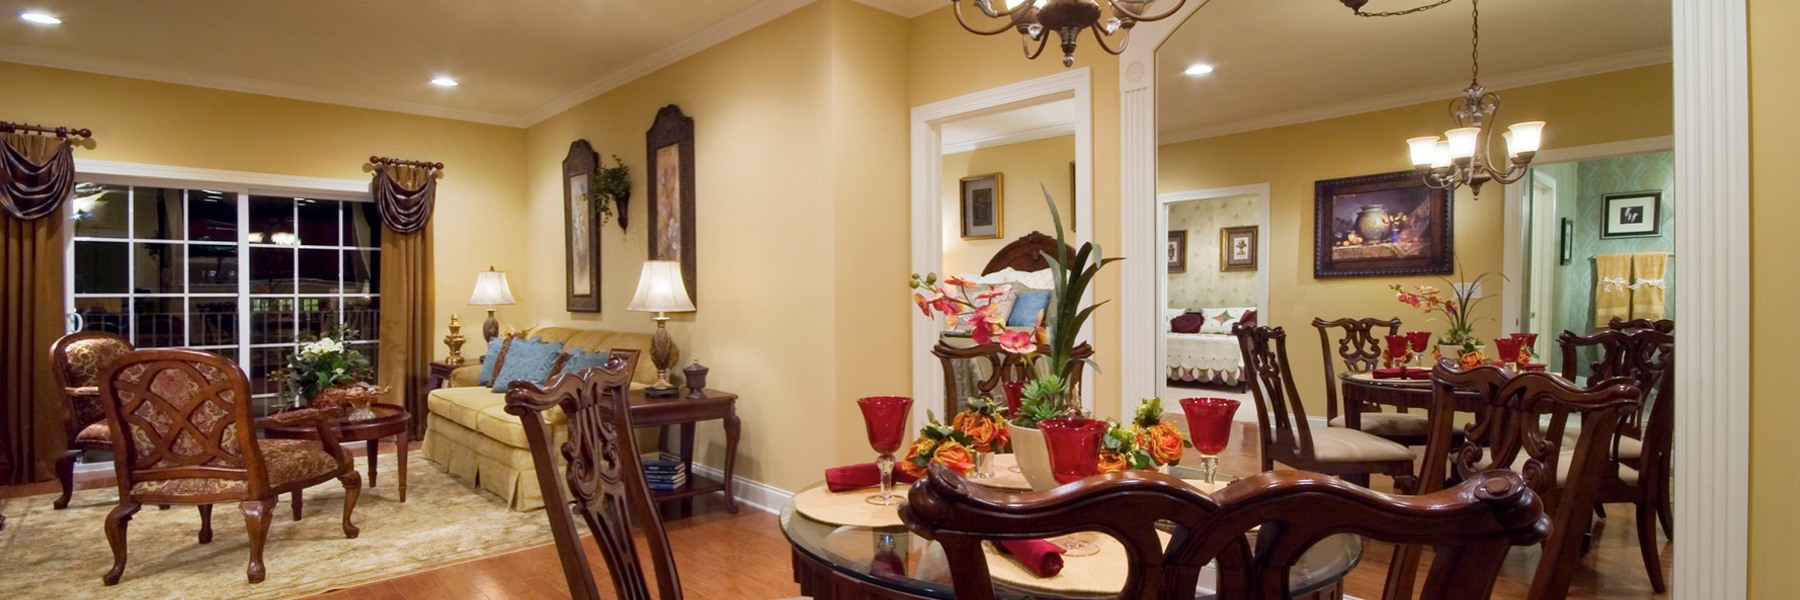 Montage At Hamilton Apartments For Rent in Hamilton Township, NJ Dining Room